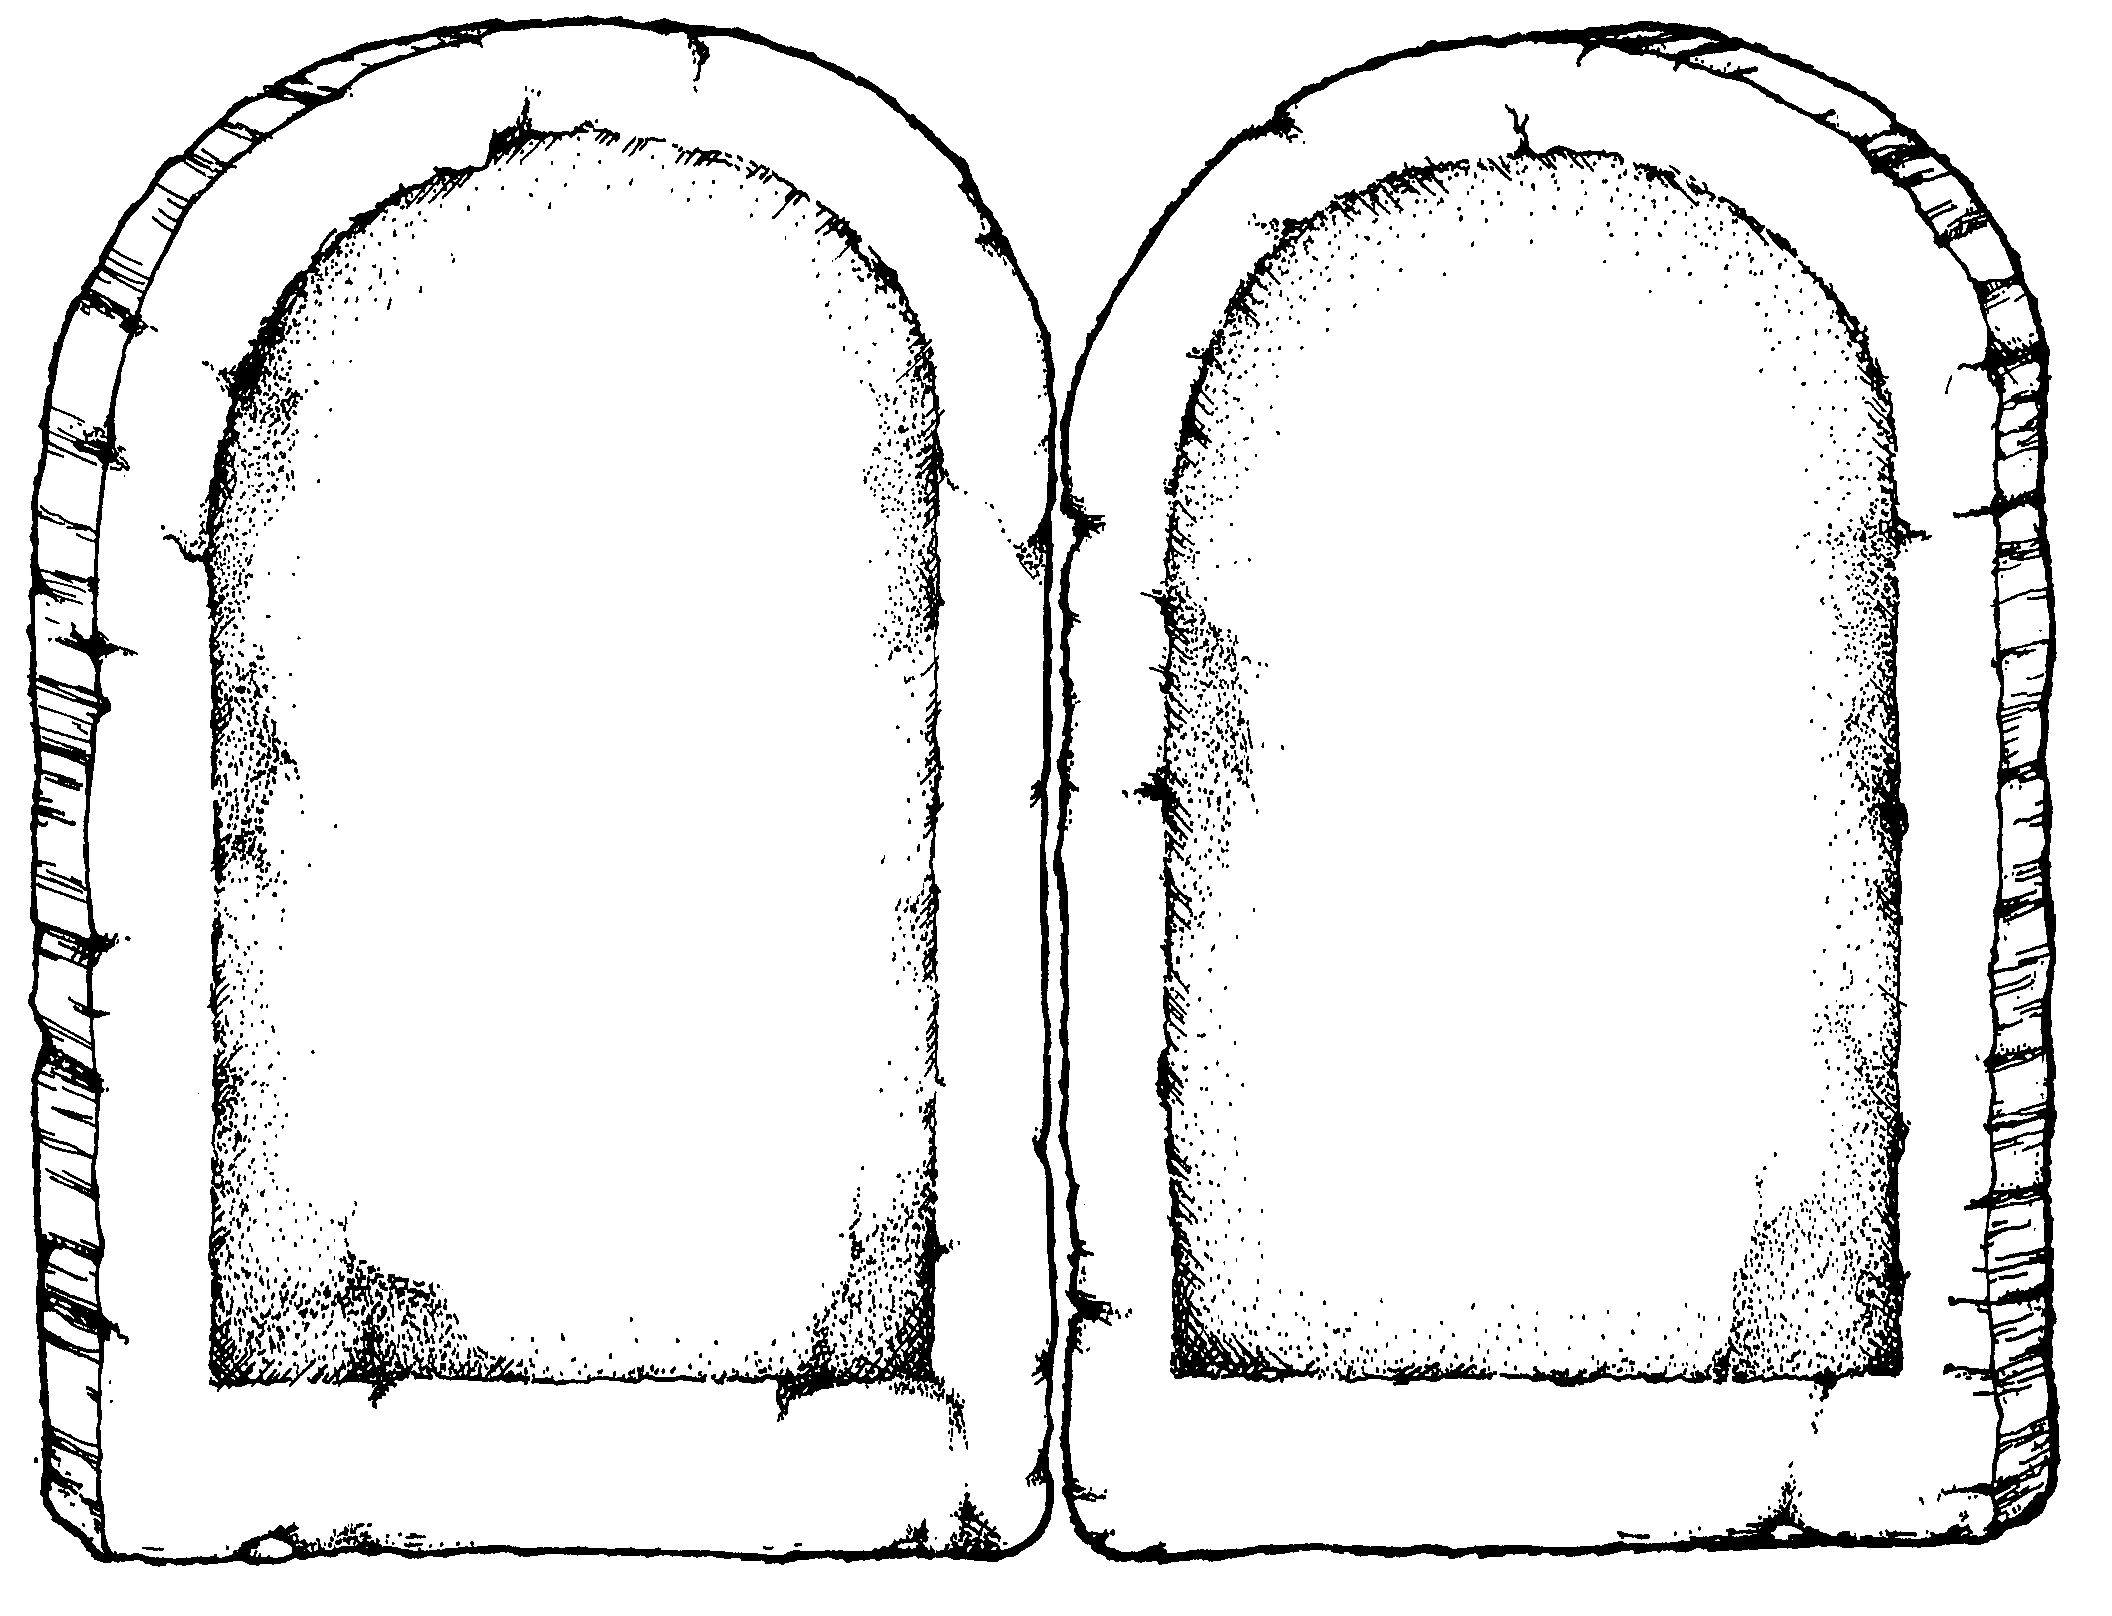 coloring pages ten commandments tablets for sale | Great image of stone tablets to use for 10 Commandments ...